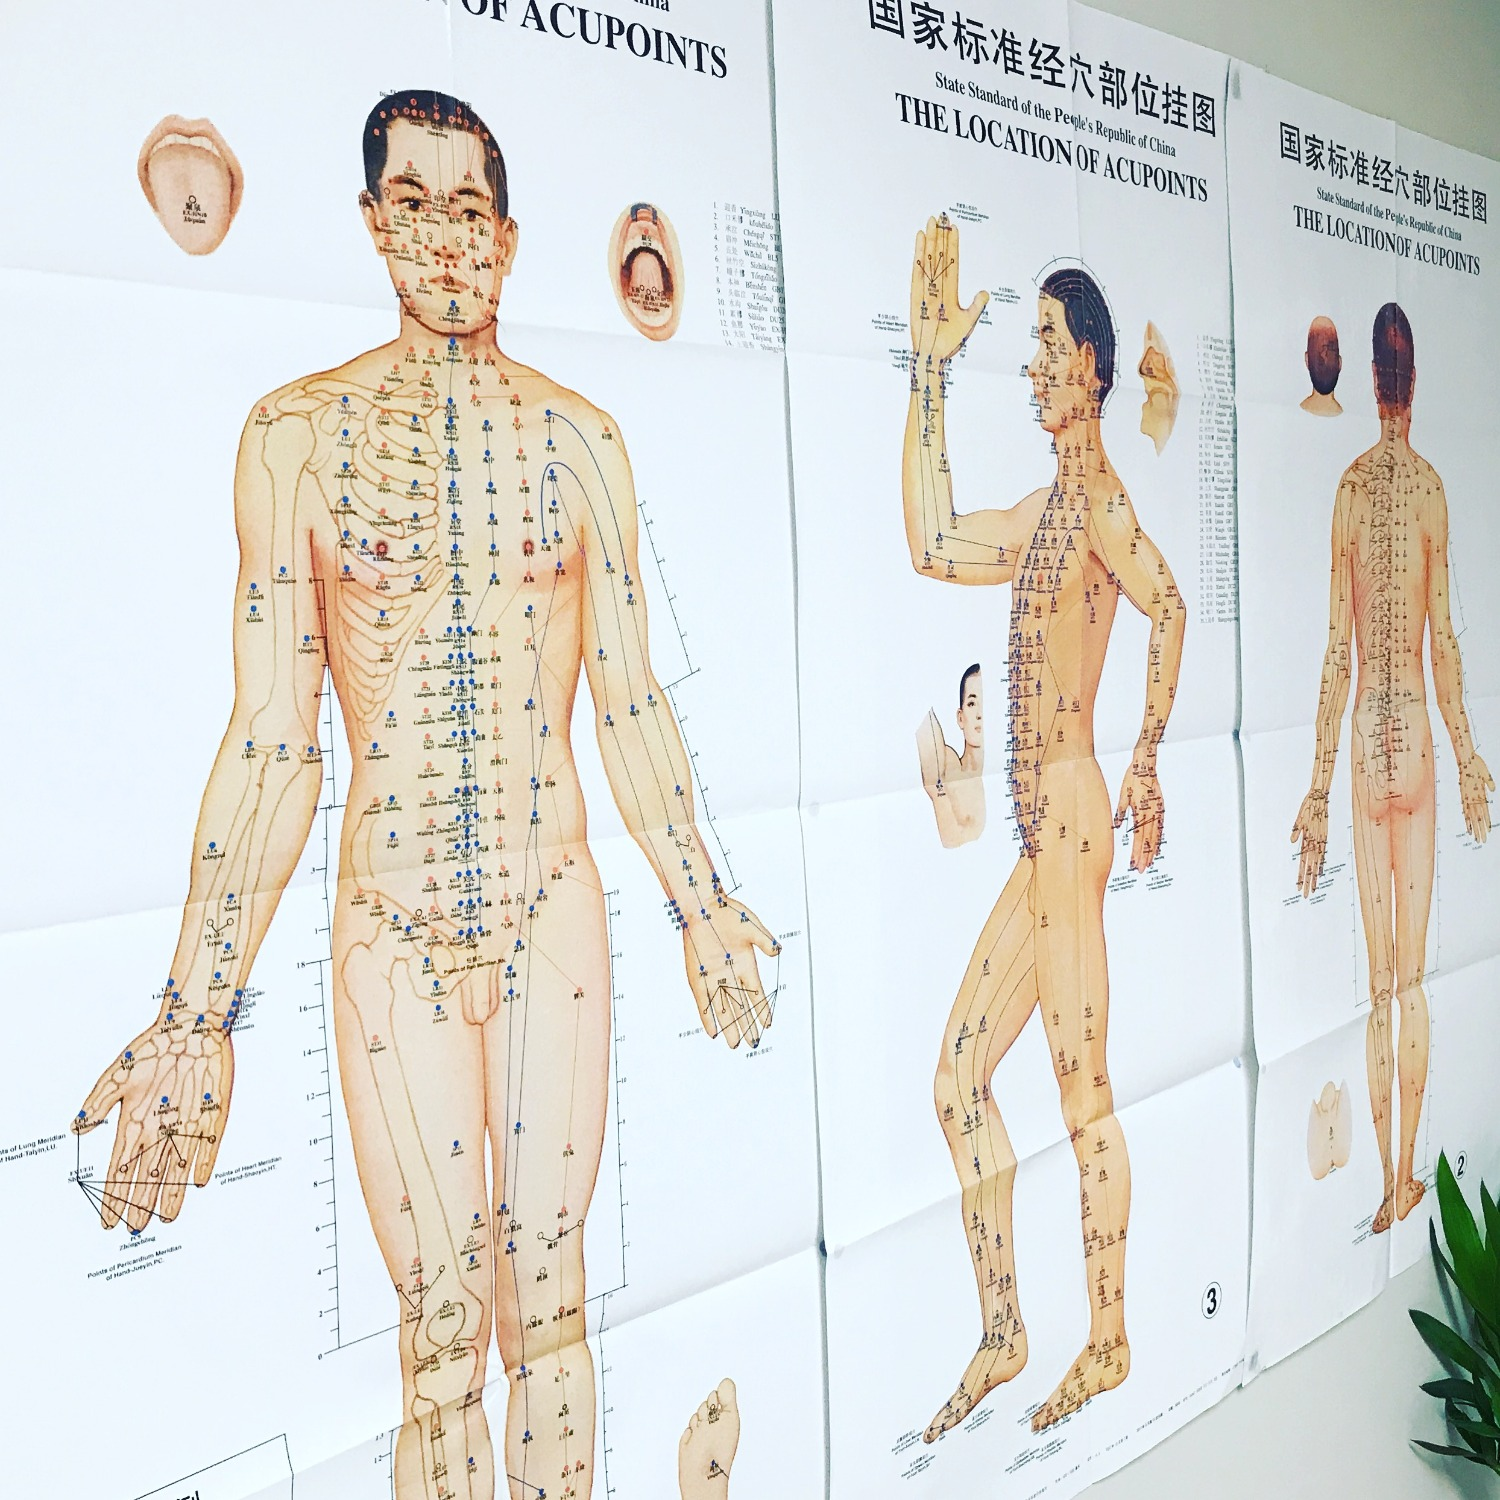 Acupuncture points + Channels